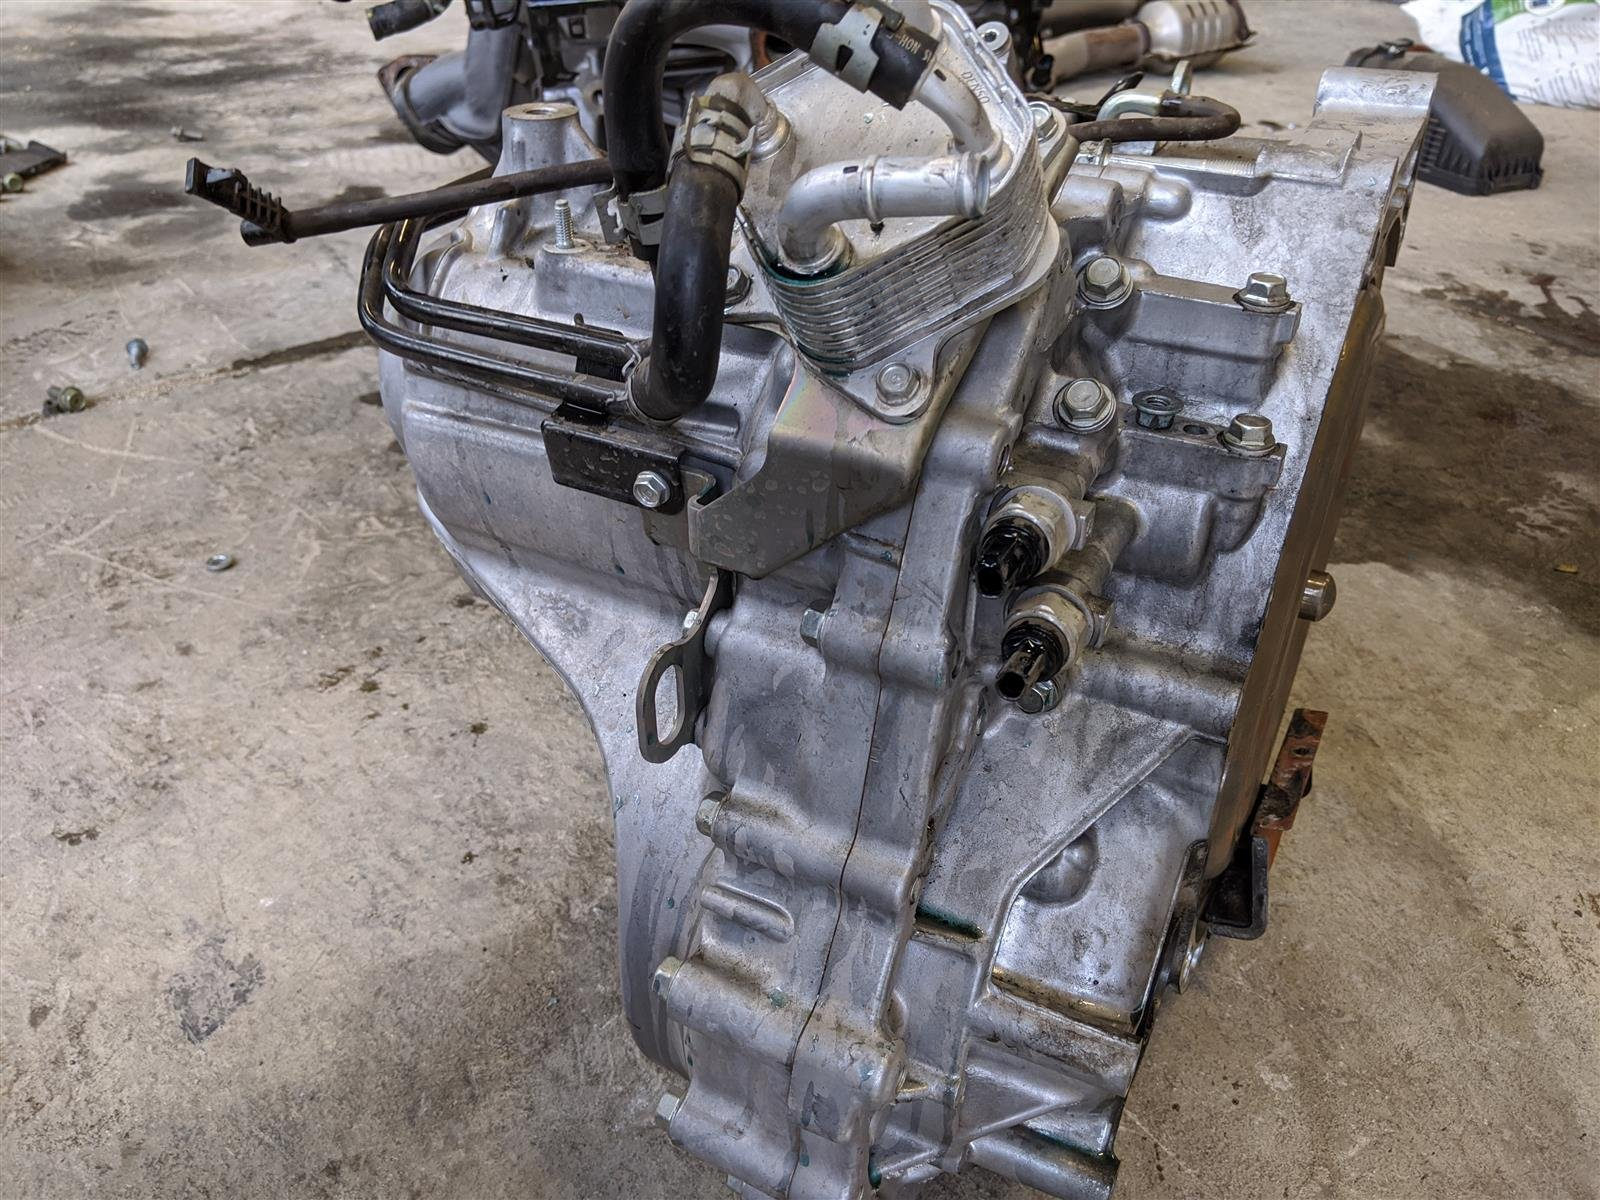 2016 Honda Pilot 2wd 6 Speed Transmission Replacement